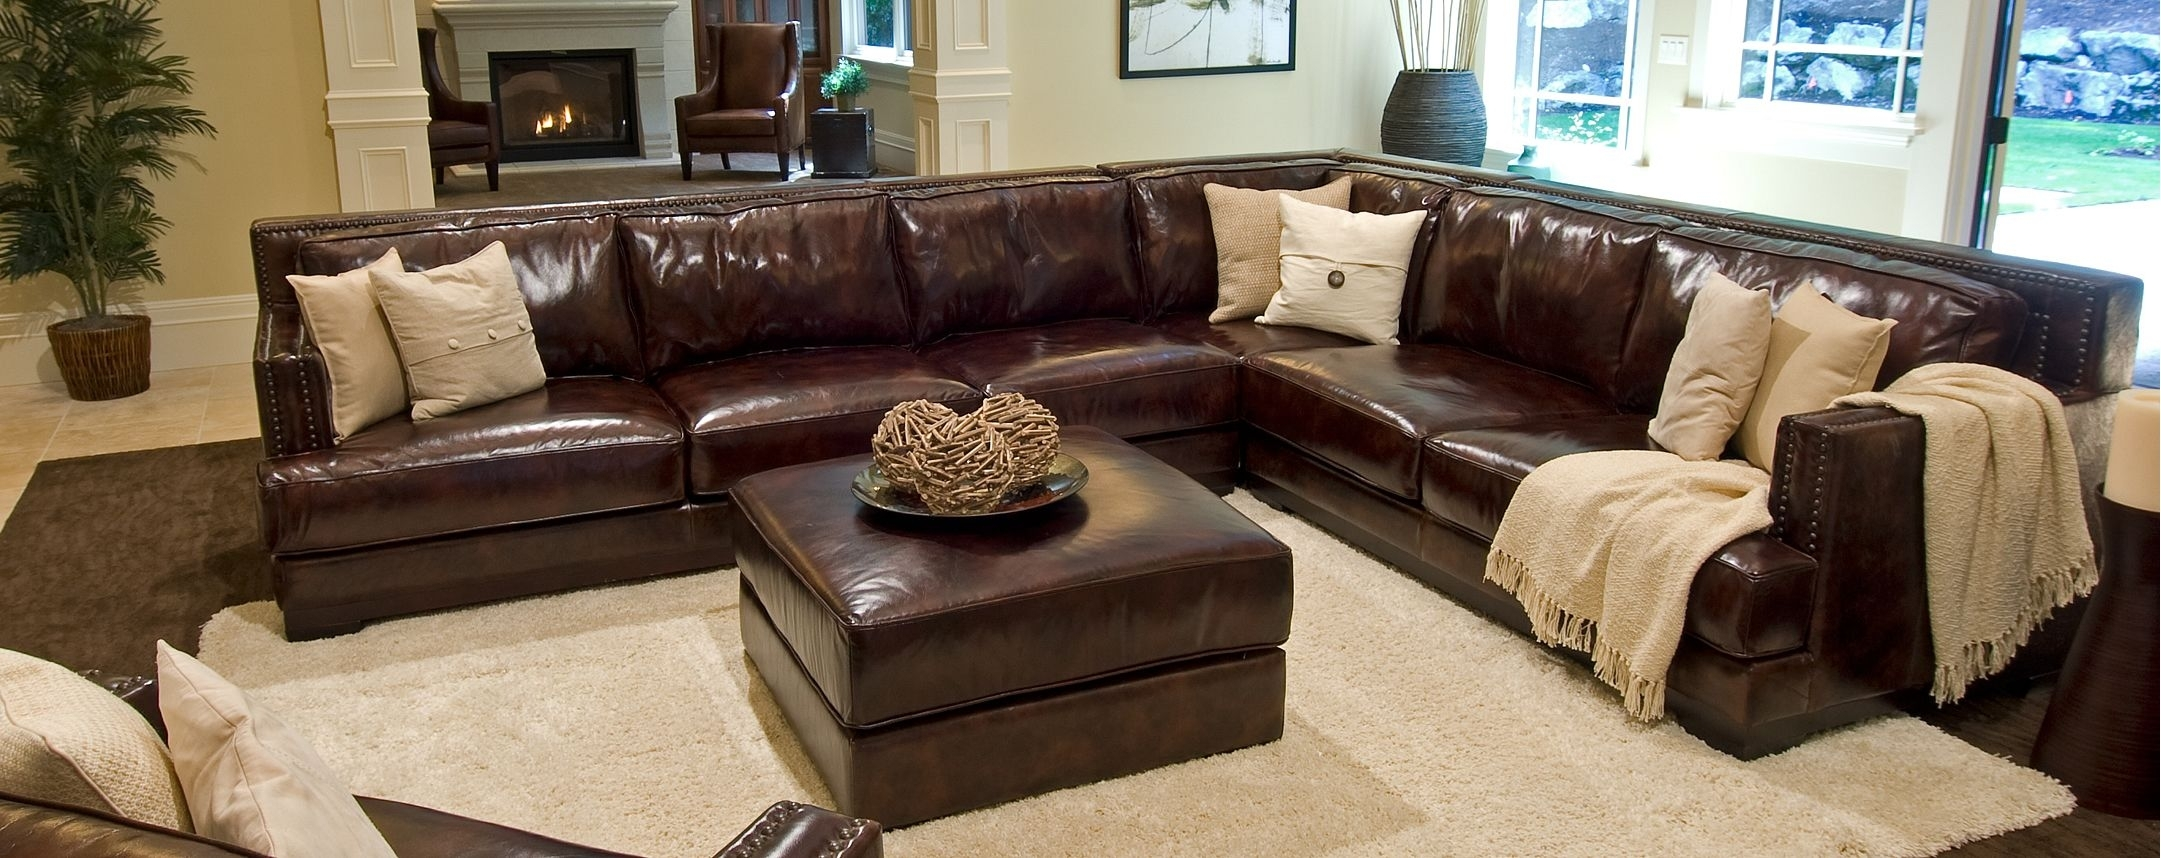 Pinsofascouch On Sofas & Couches | Pinterest | Sofa, Leather With Regard To London Optical Reversible Sofa Chaise Sectionals (Image 19 of 25)